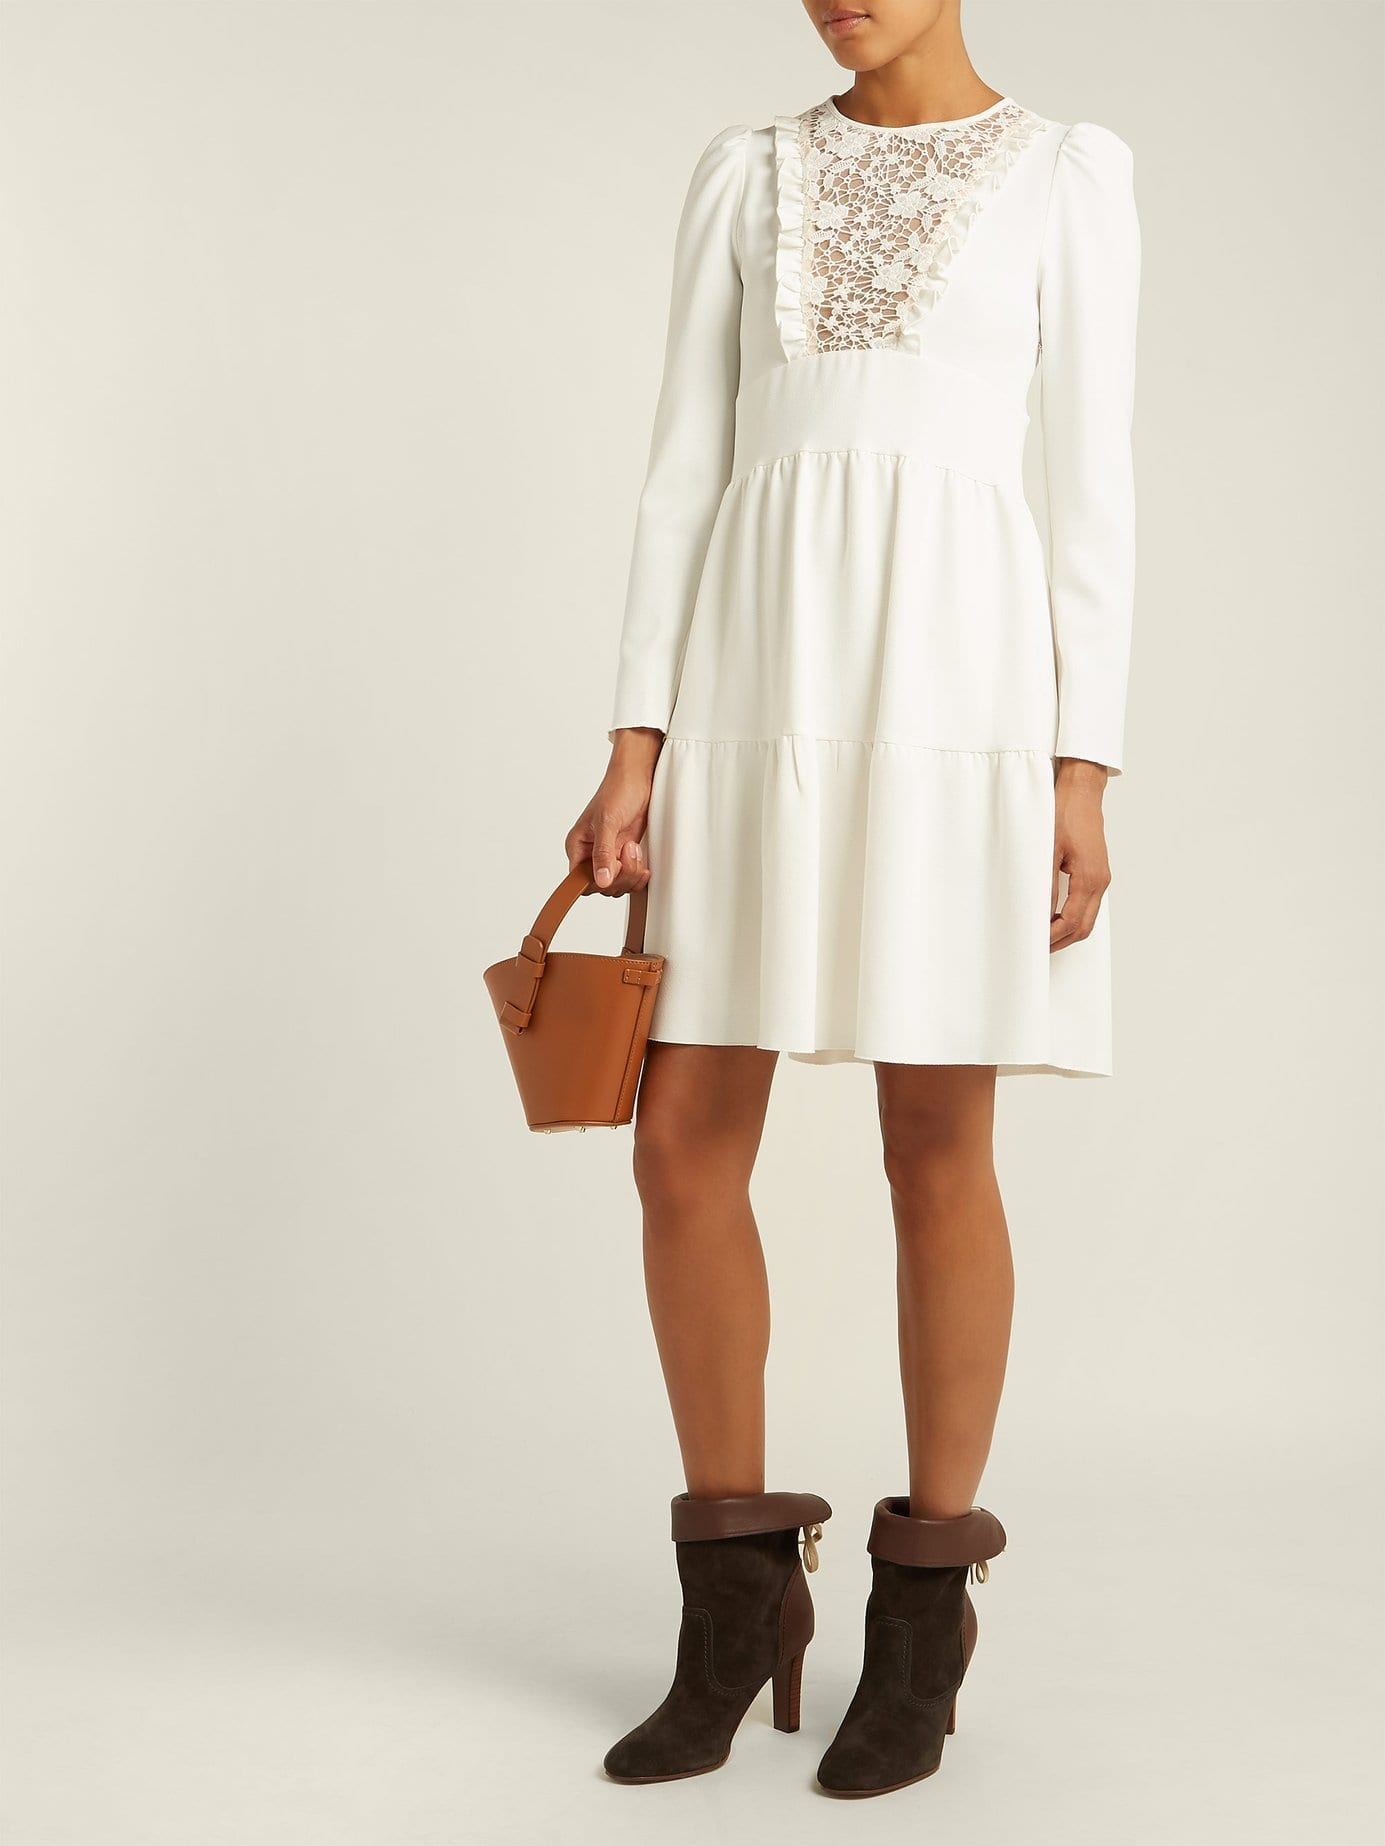 f7fc725995 SEE BY CHLOÉ Lace Crêpe White Dress - We Select Dresses